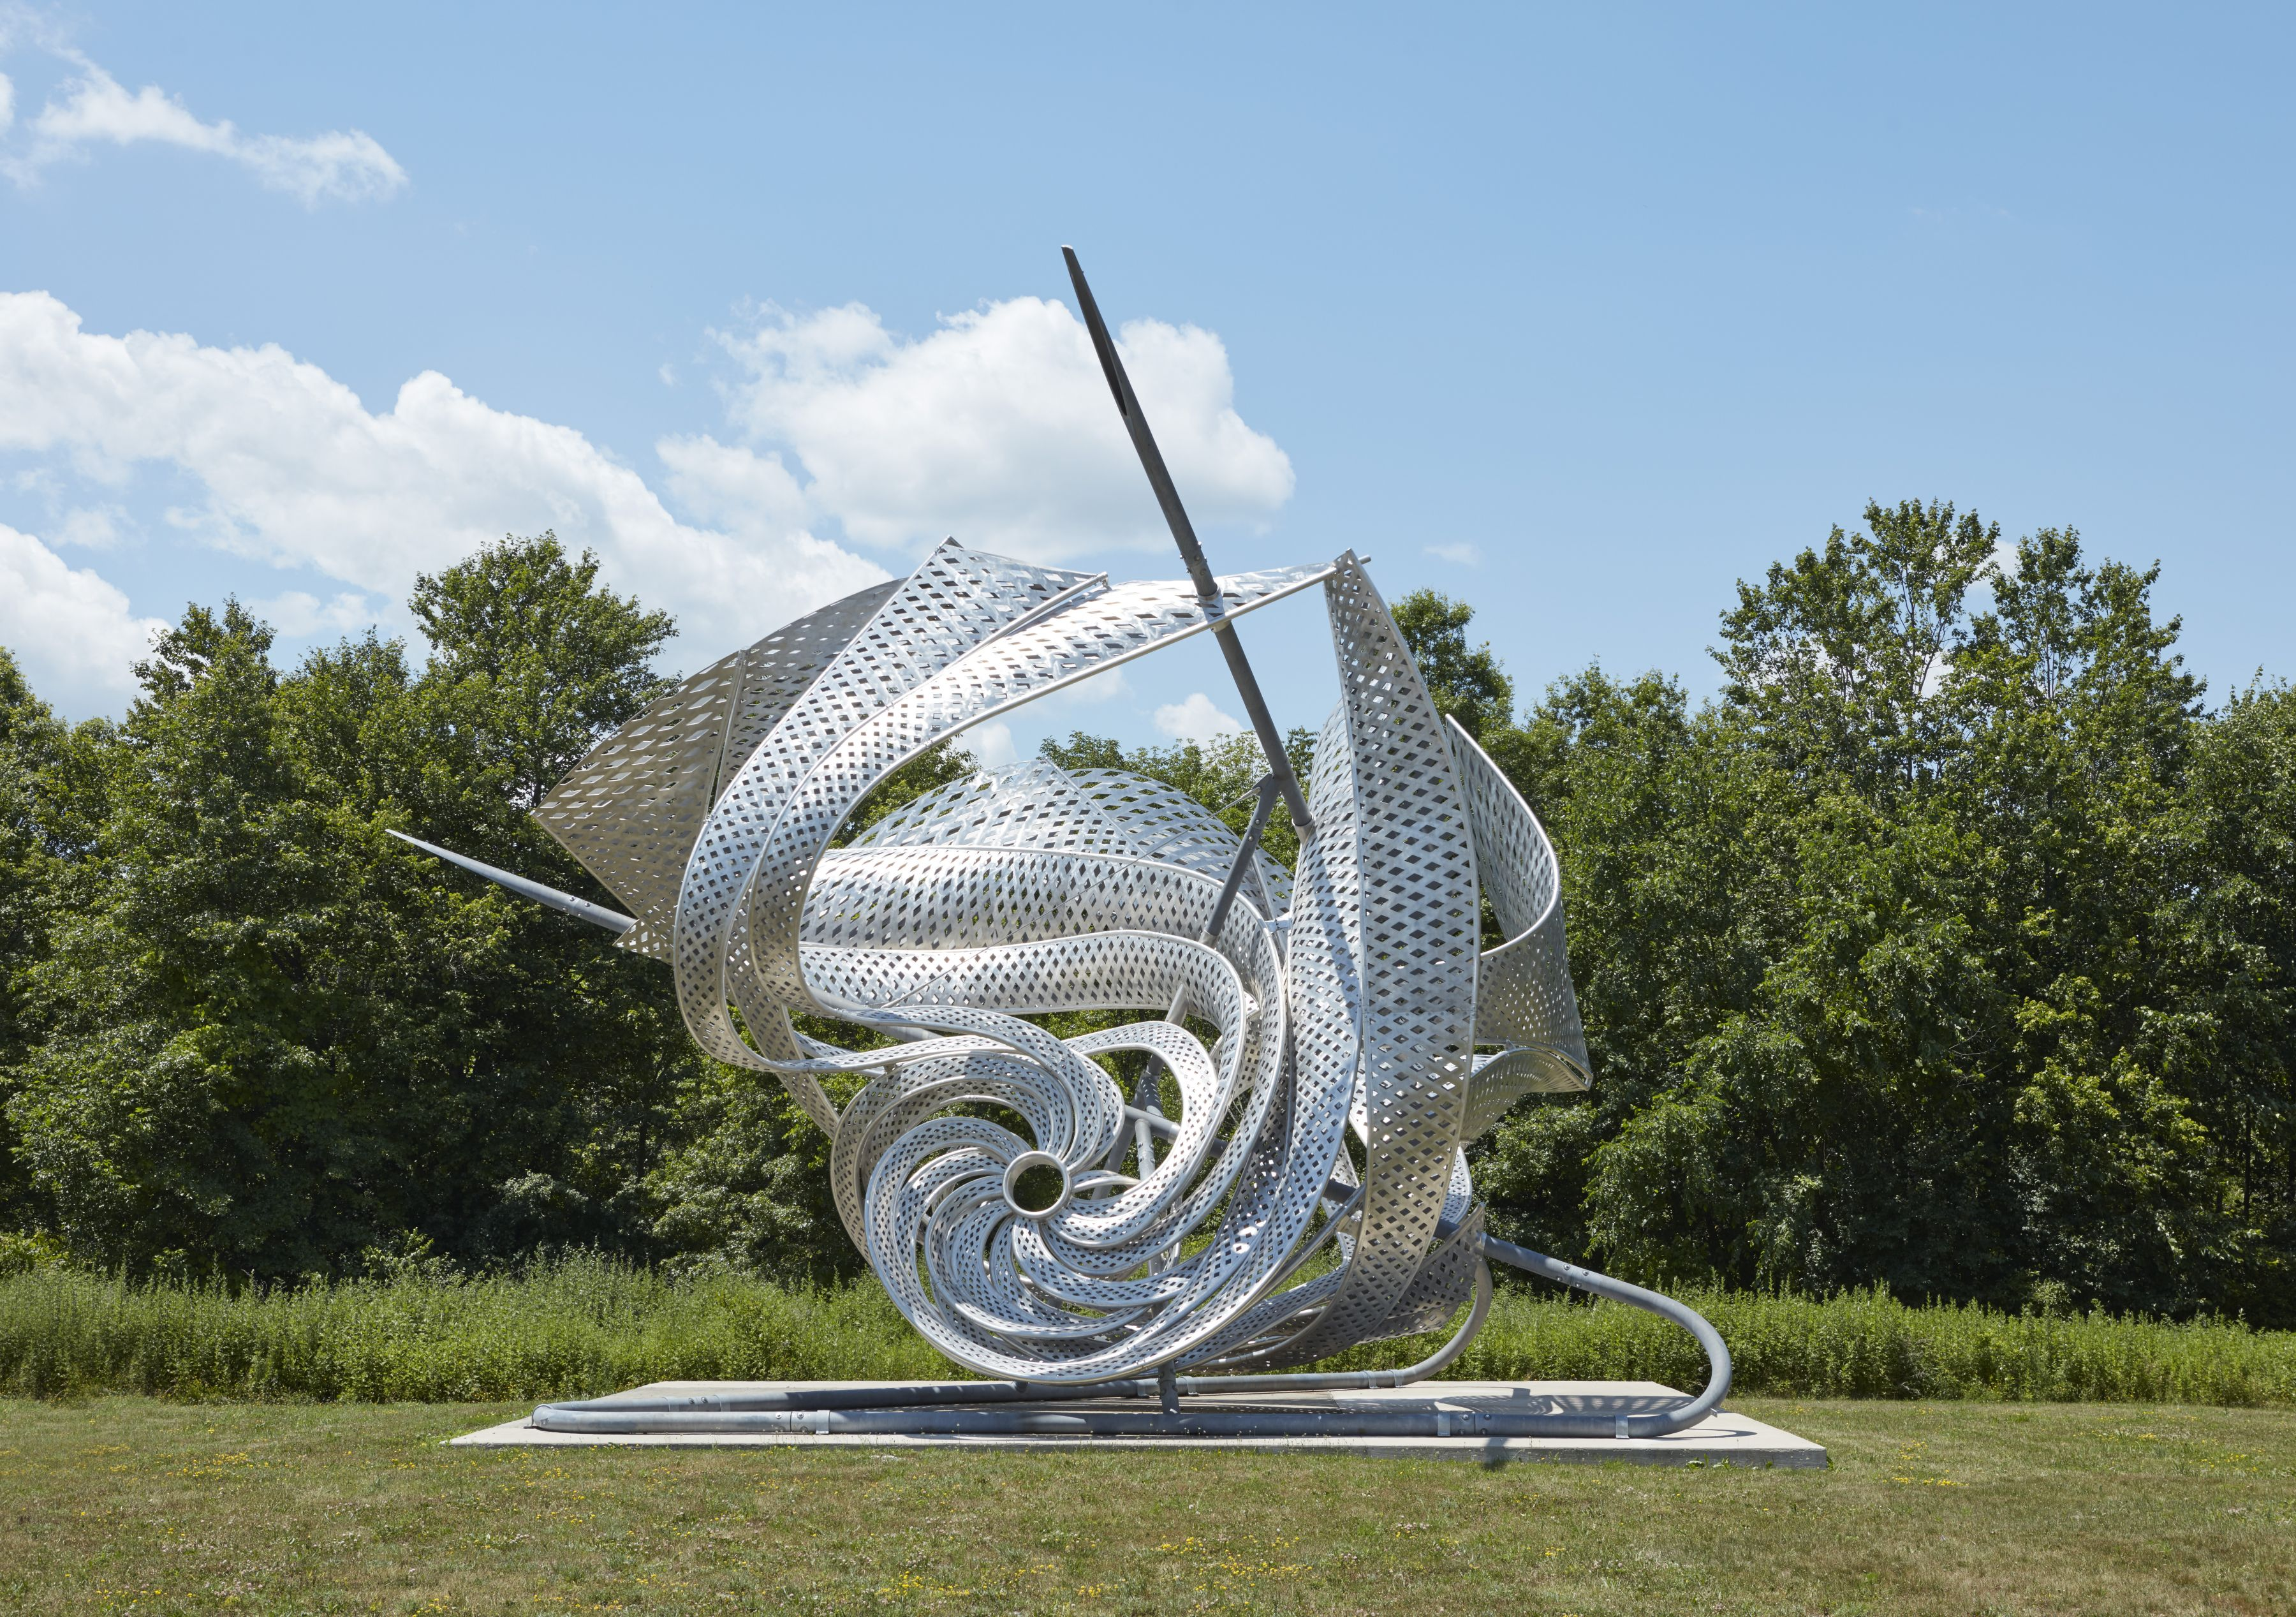 a twisted metal sculpture outdoors by frank stella